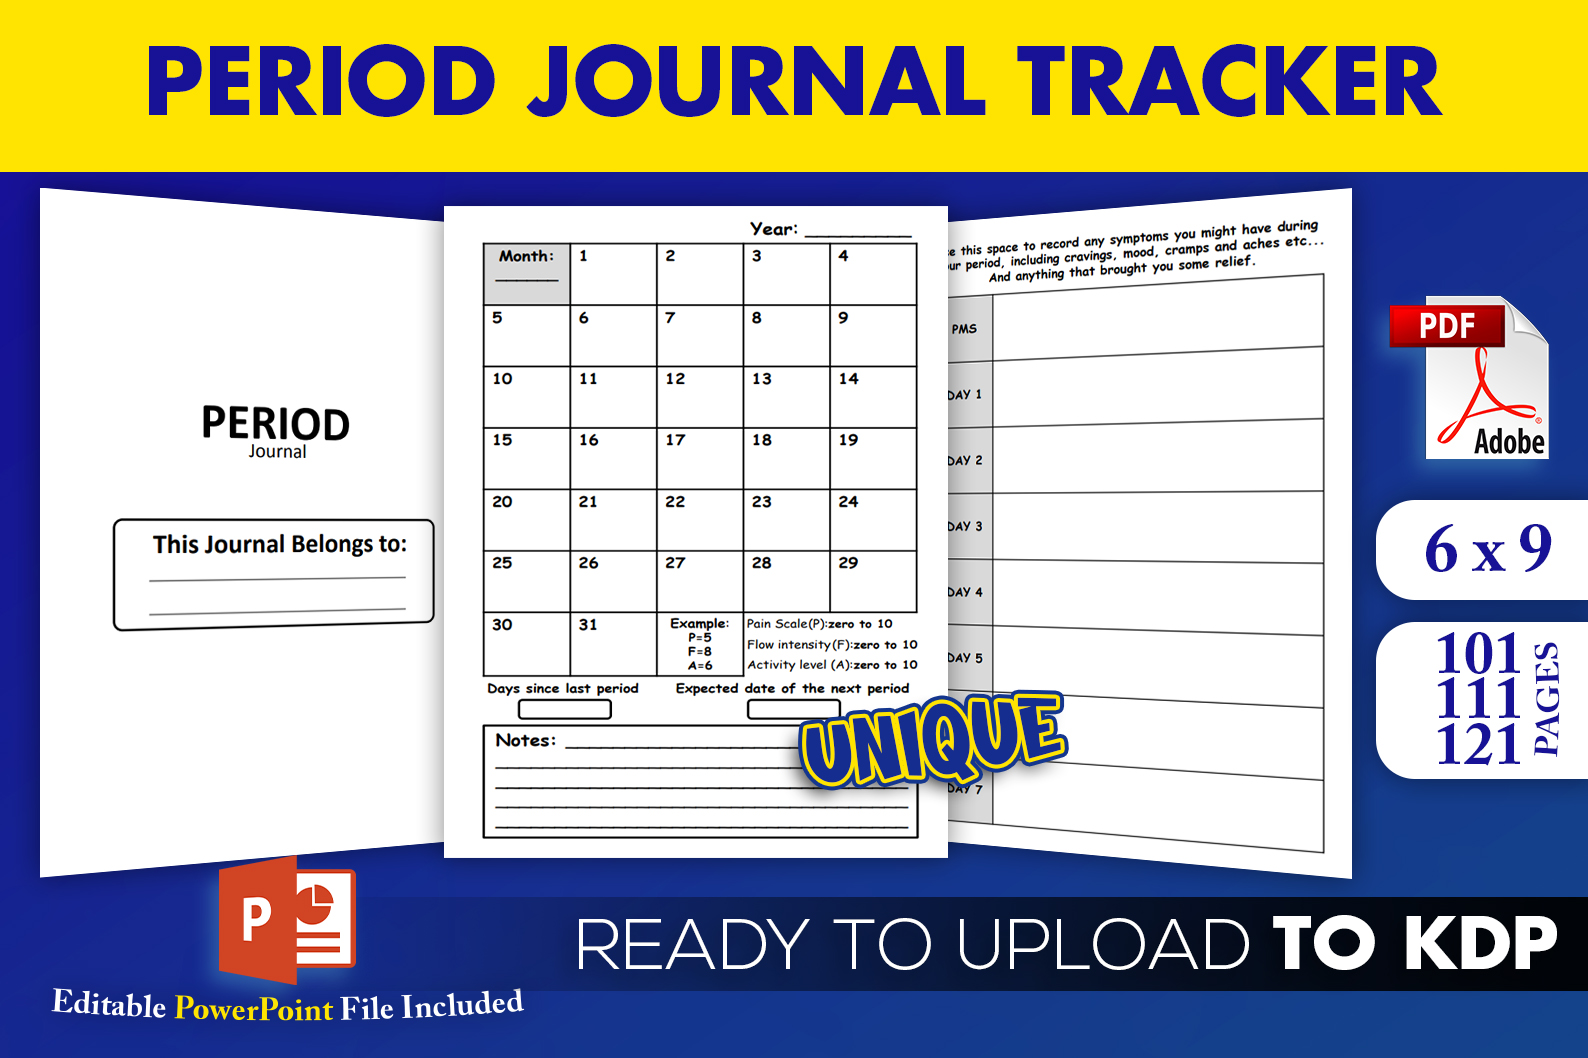 Download Free Period Journal Tracker Log Kdp Interior Graphic By Beast for Cricut Explore, Silhouette and other cutting machines.